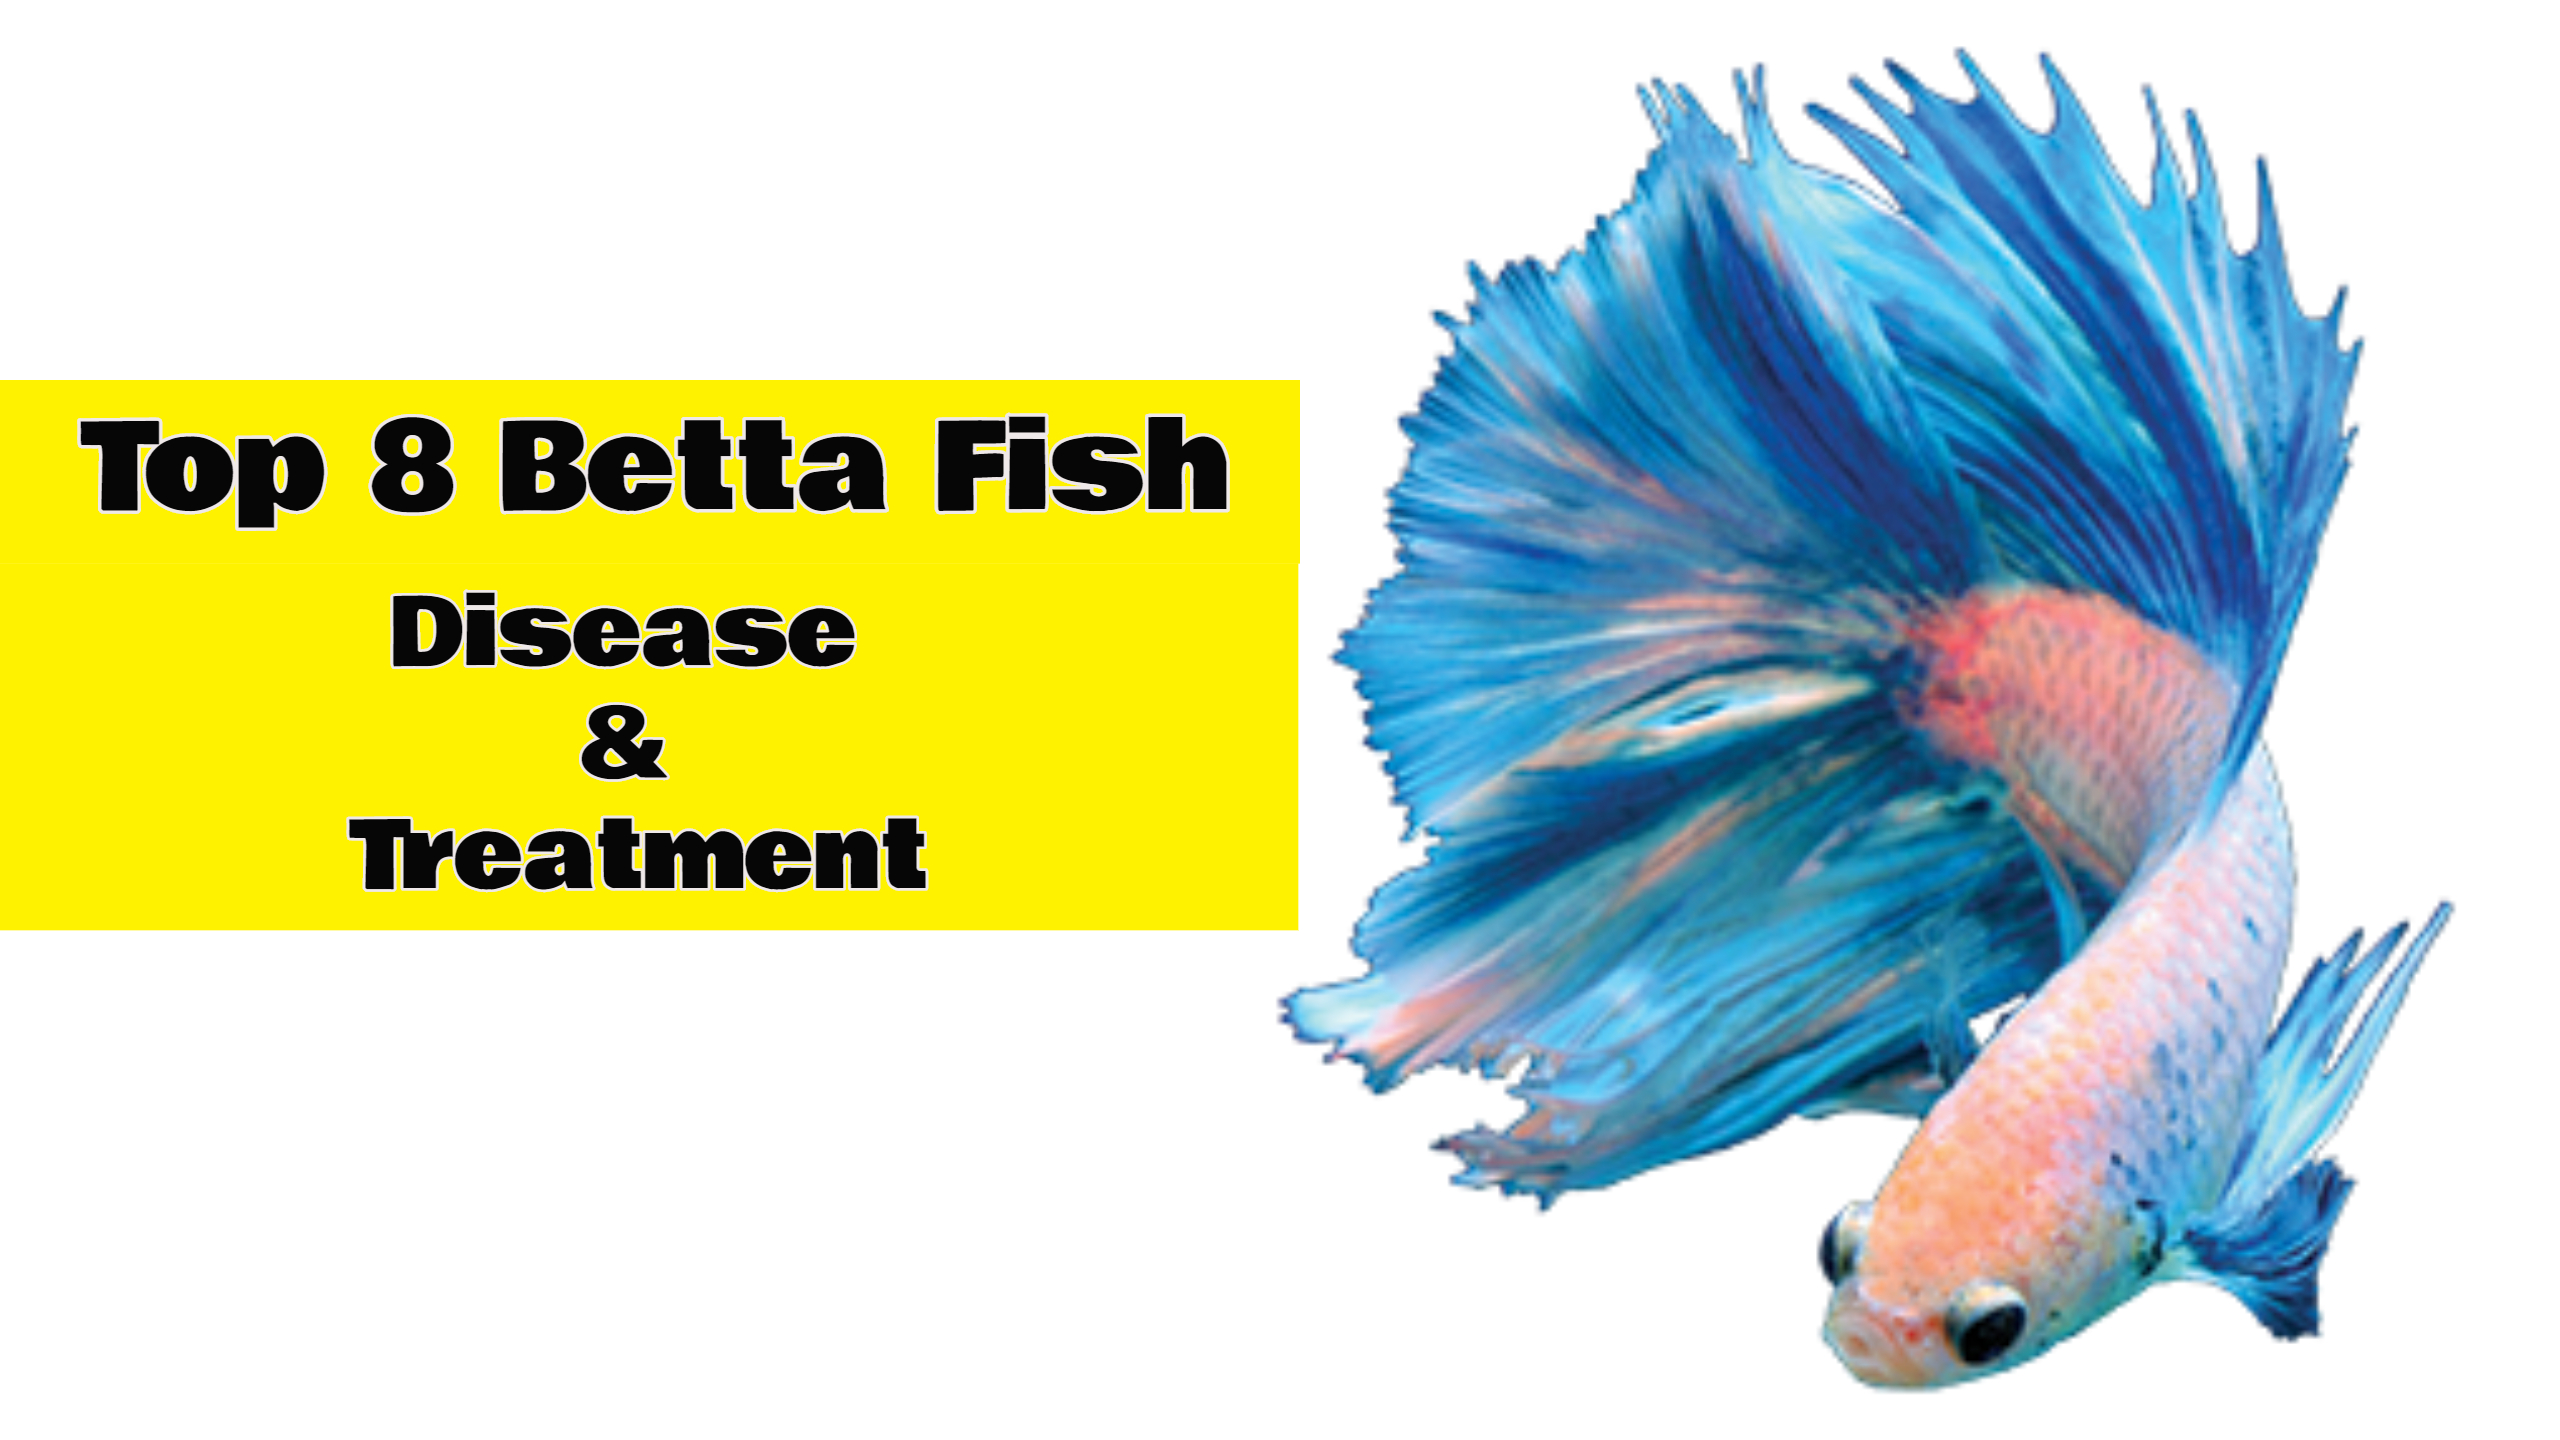 TOP 8 MOST COMMON BETTA FISH DISEASE AND TREATMENT